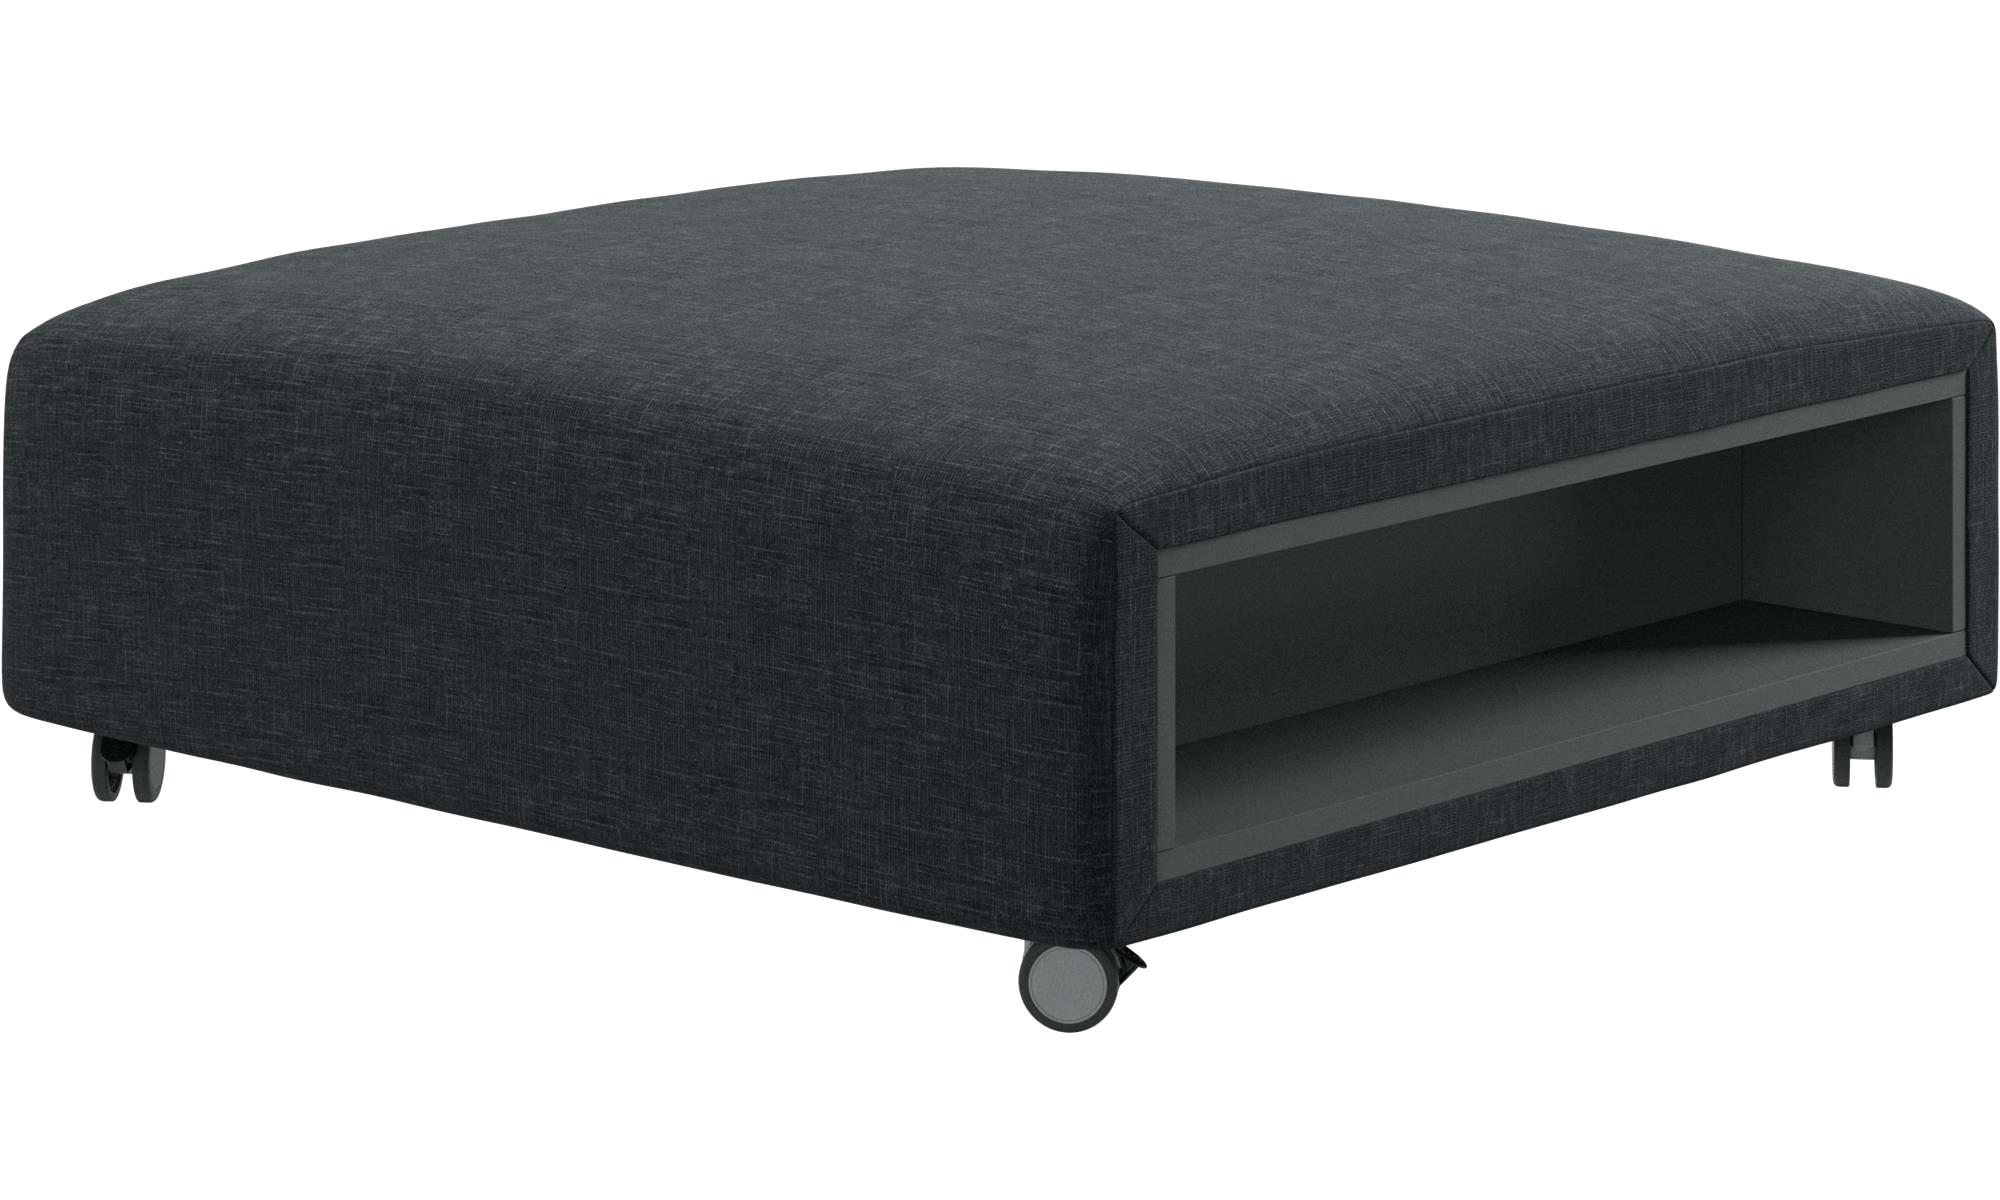 Popular Ottoman With Wheels Ottomans Pouf On Wheels With Storage Left And For Ottomans With Wheels (View 17 of 20)